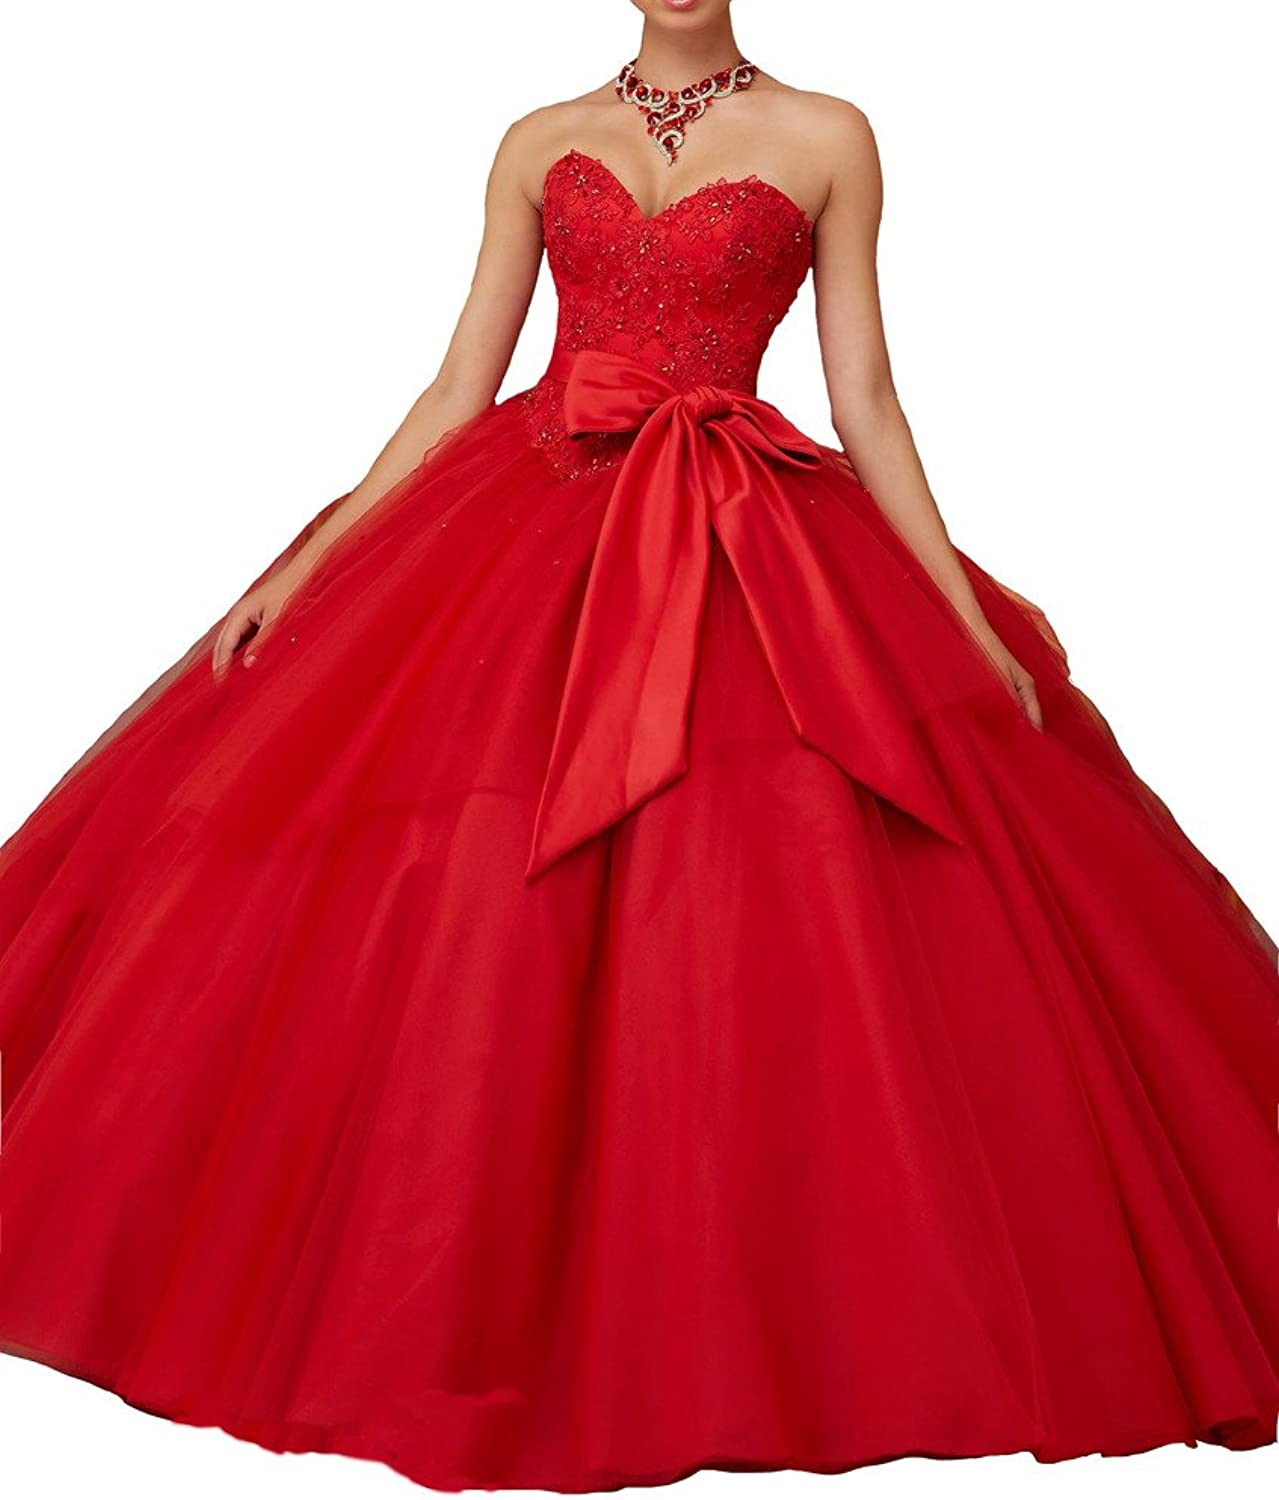 Jurong Women's Strapless Beads Bow Tie Red Carpet Ball Quinceanera Dresses